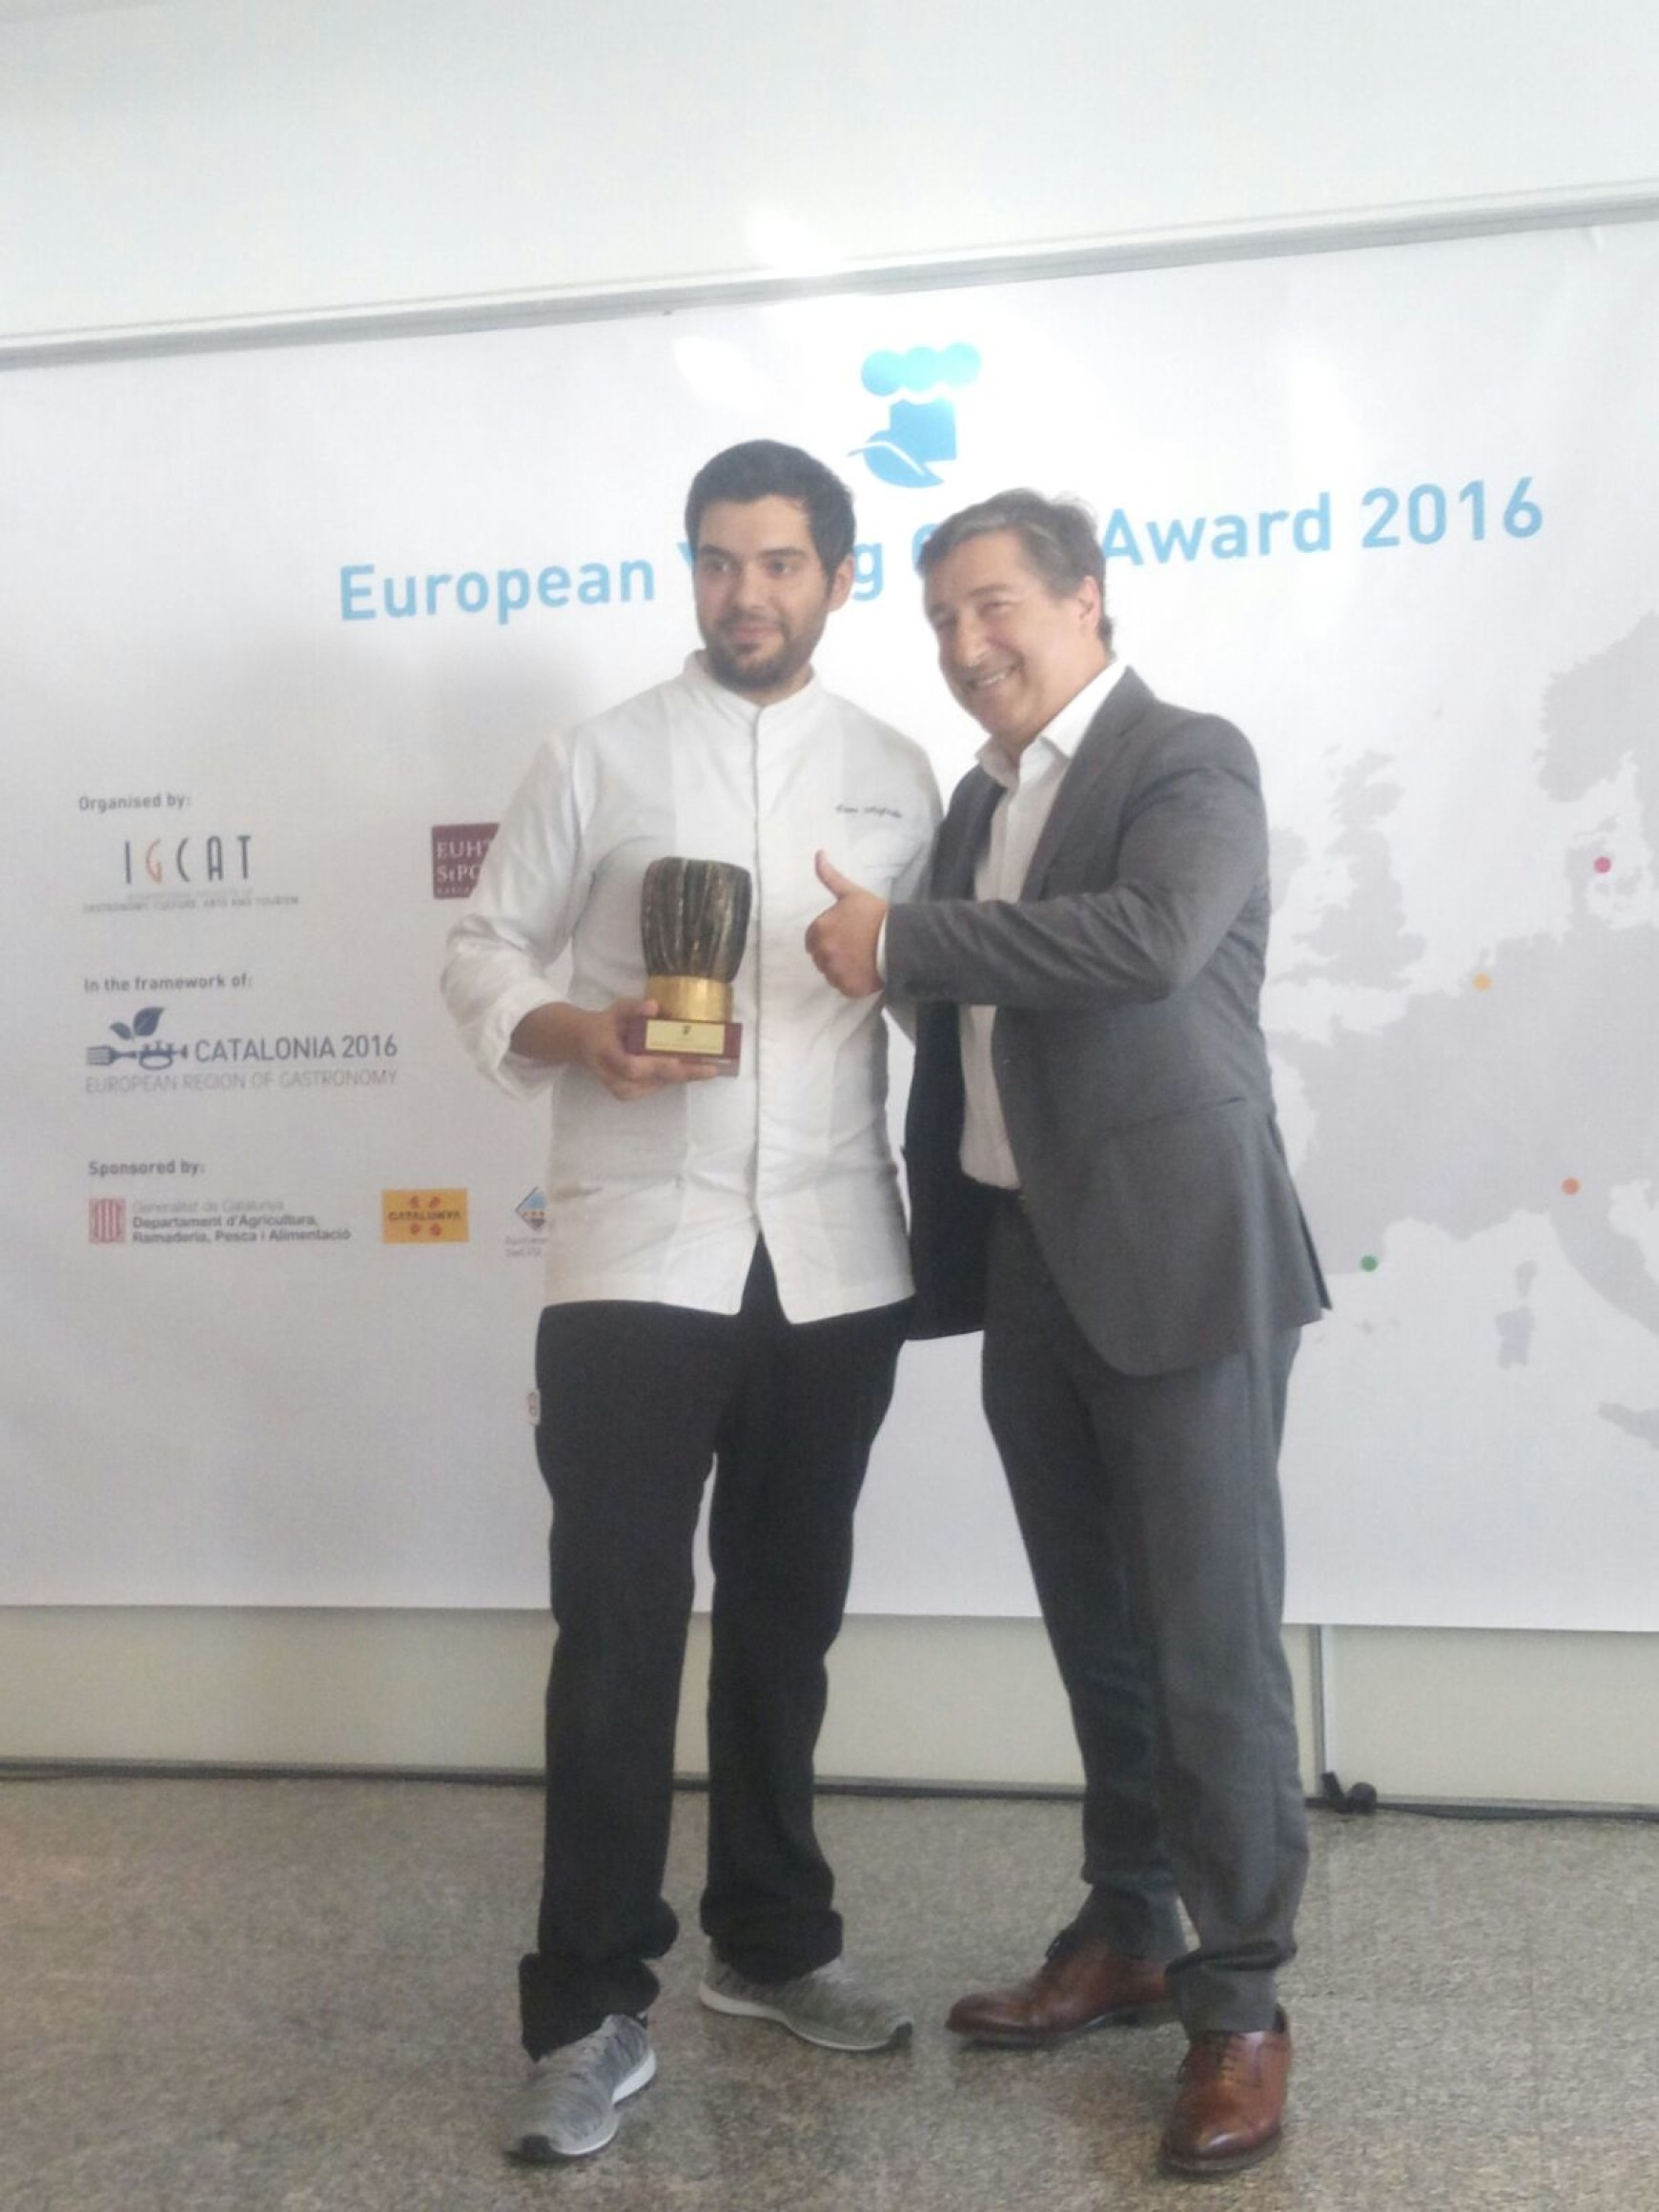 European Young Chef 2016 Announced